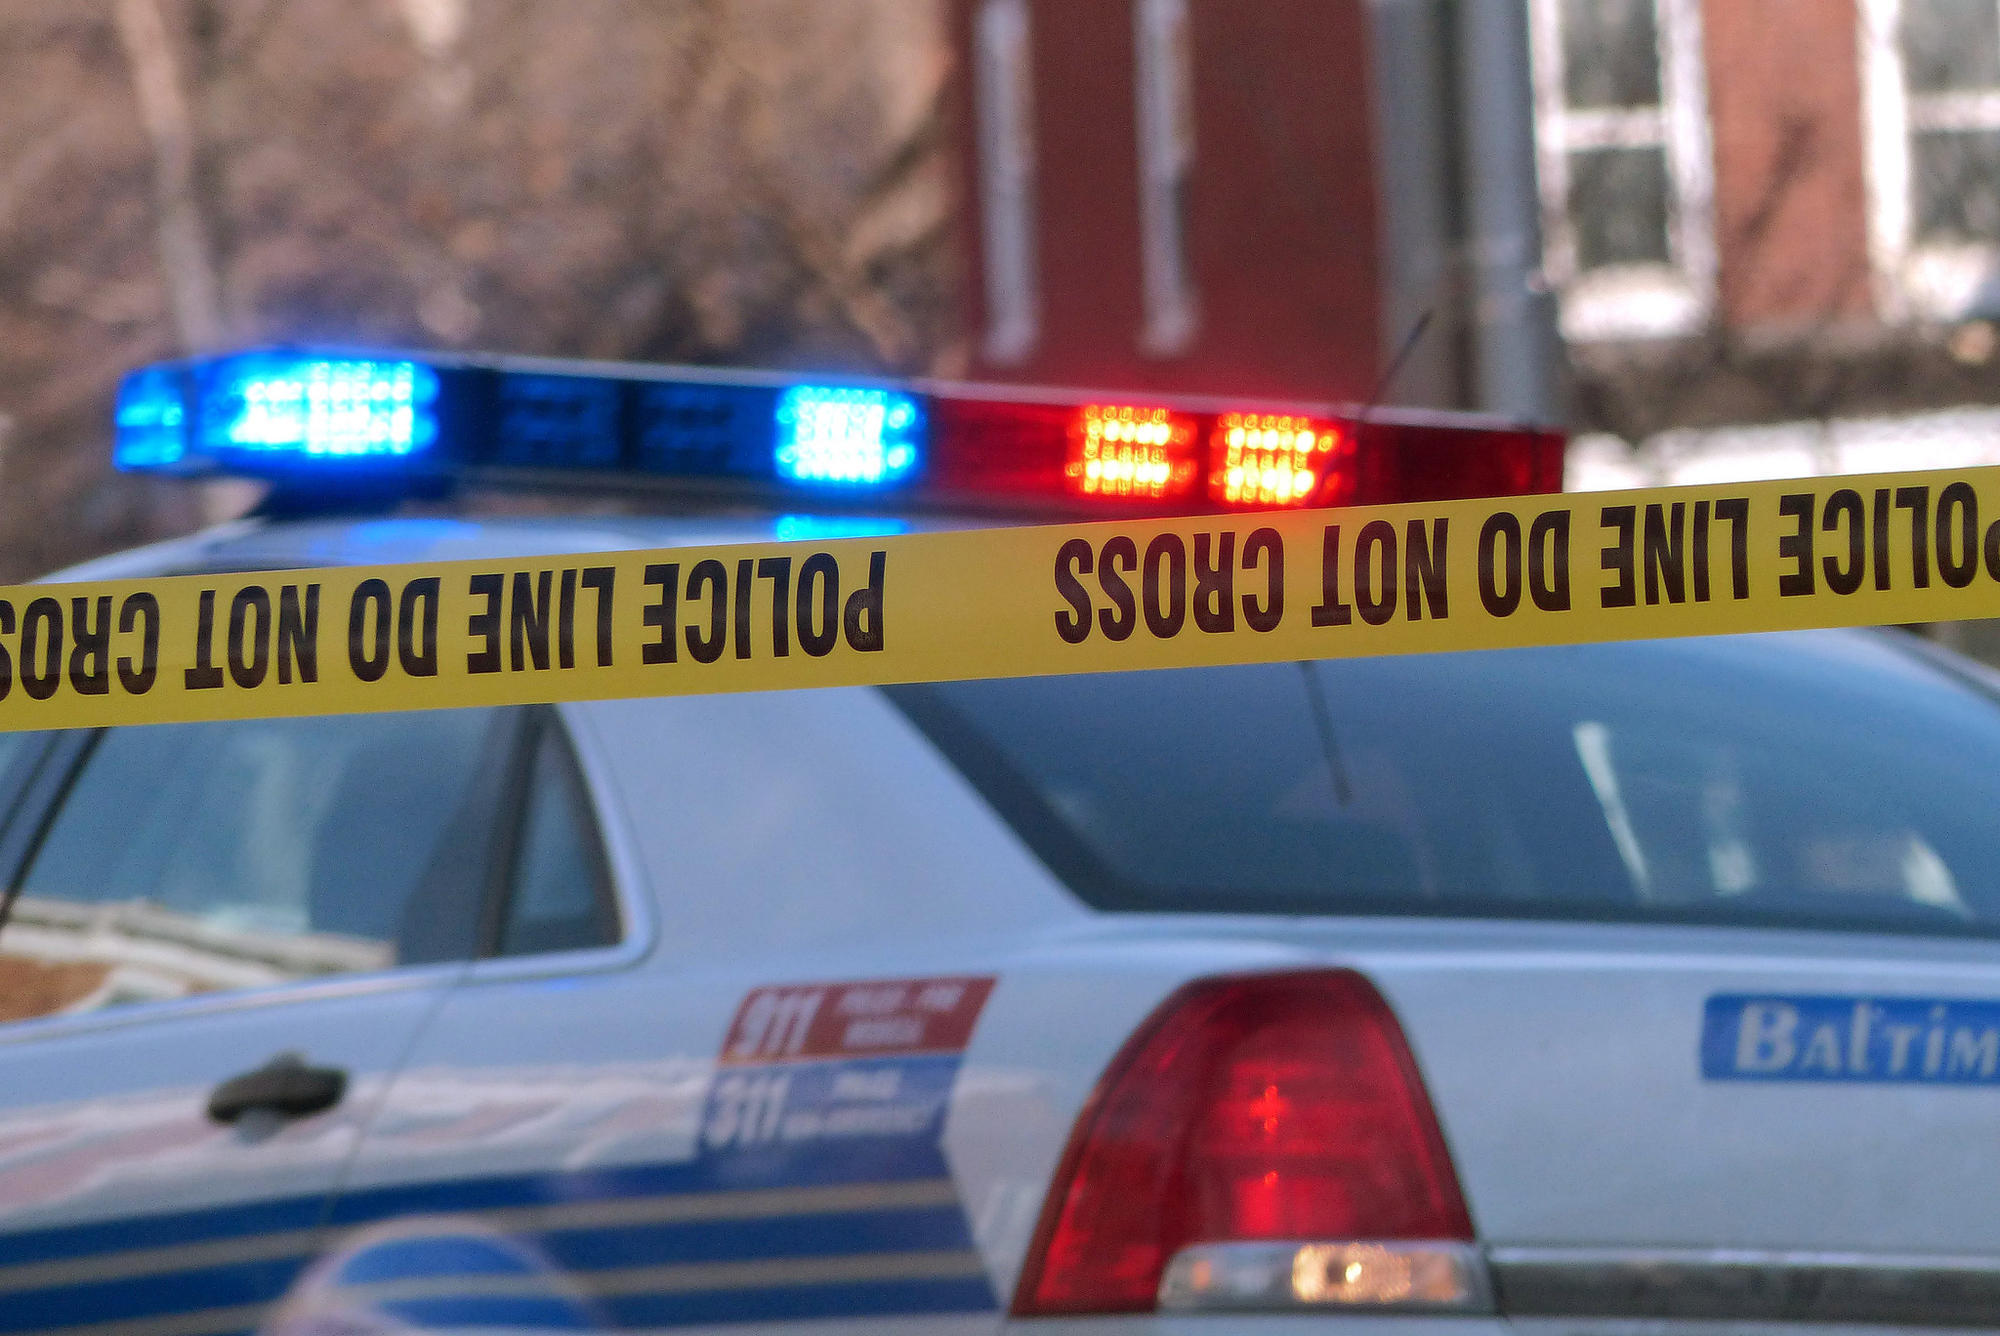 BALTIMORE Man murdered while driving in funeral procession